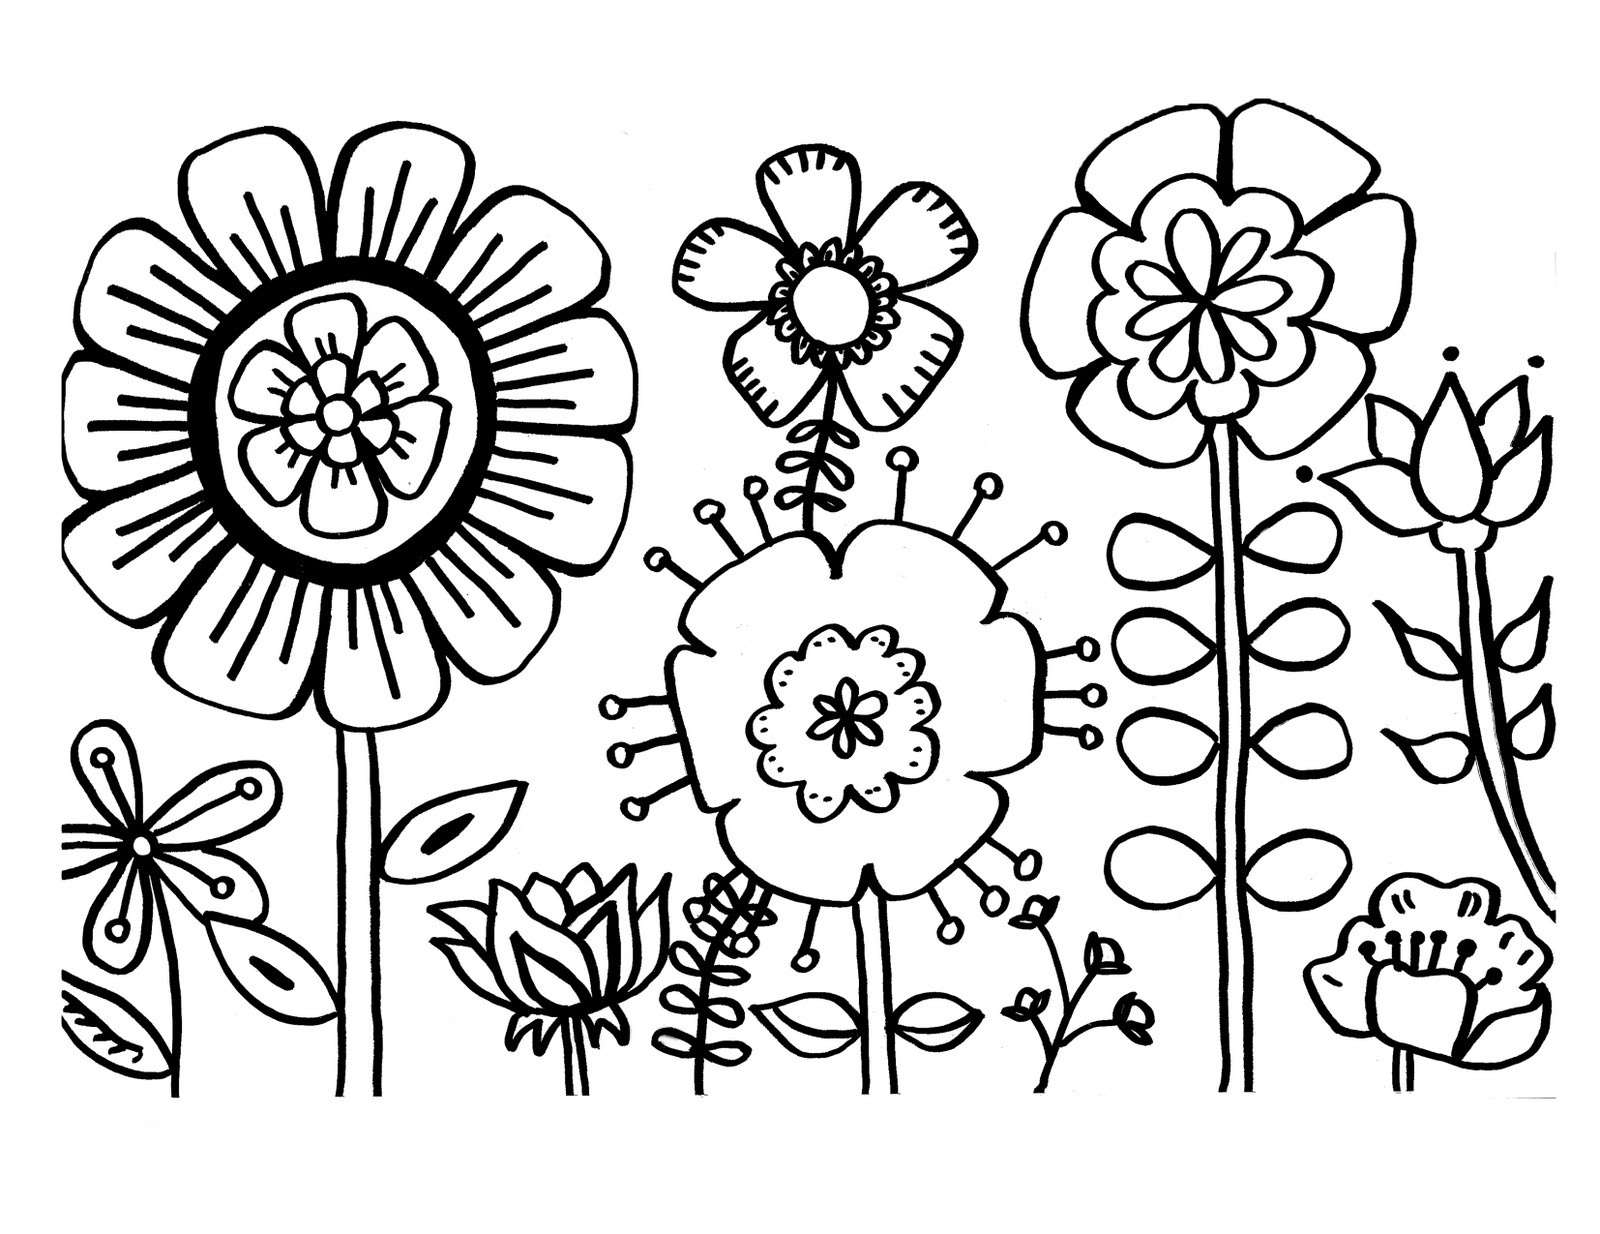 Free Printable Flower Coloring Pages For Kids - Best Coloring Pages - Free Printable Coloring Pages